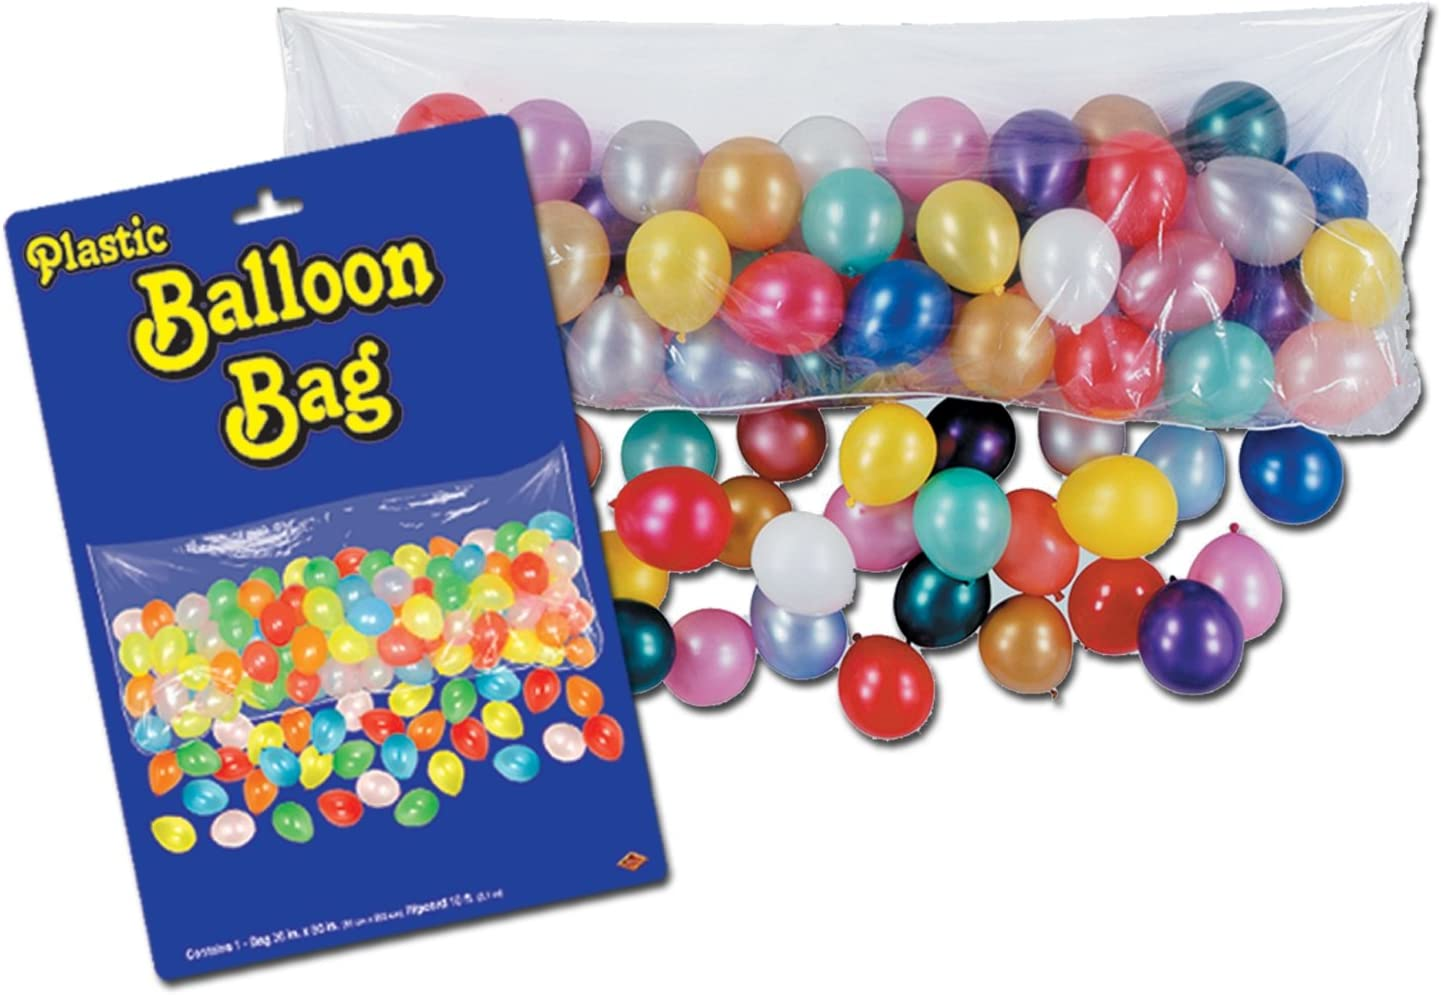 Plastic Balloon Bag The Beistle Company 55910 bag only Party Accessory 1 count